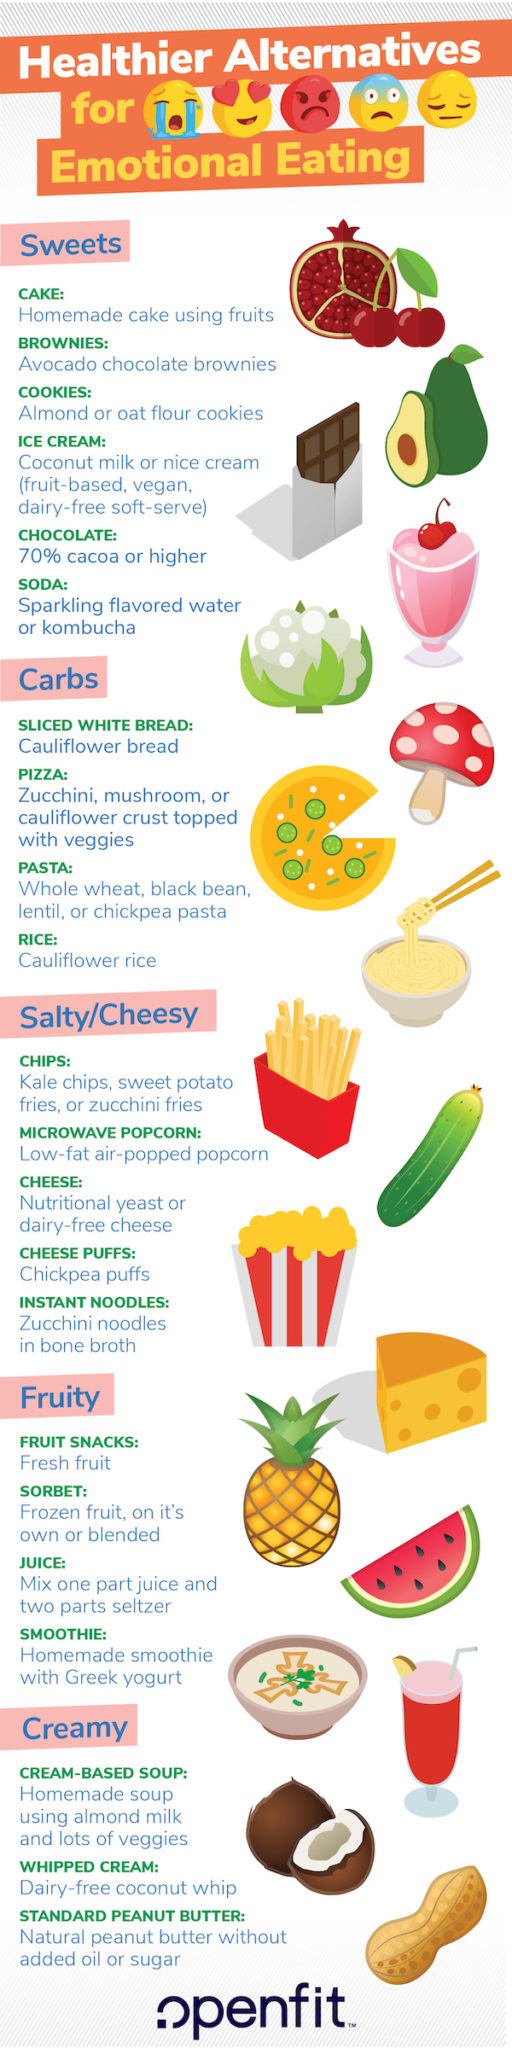 emotional eating graphic